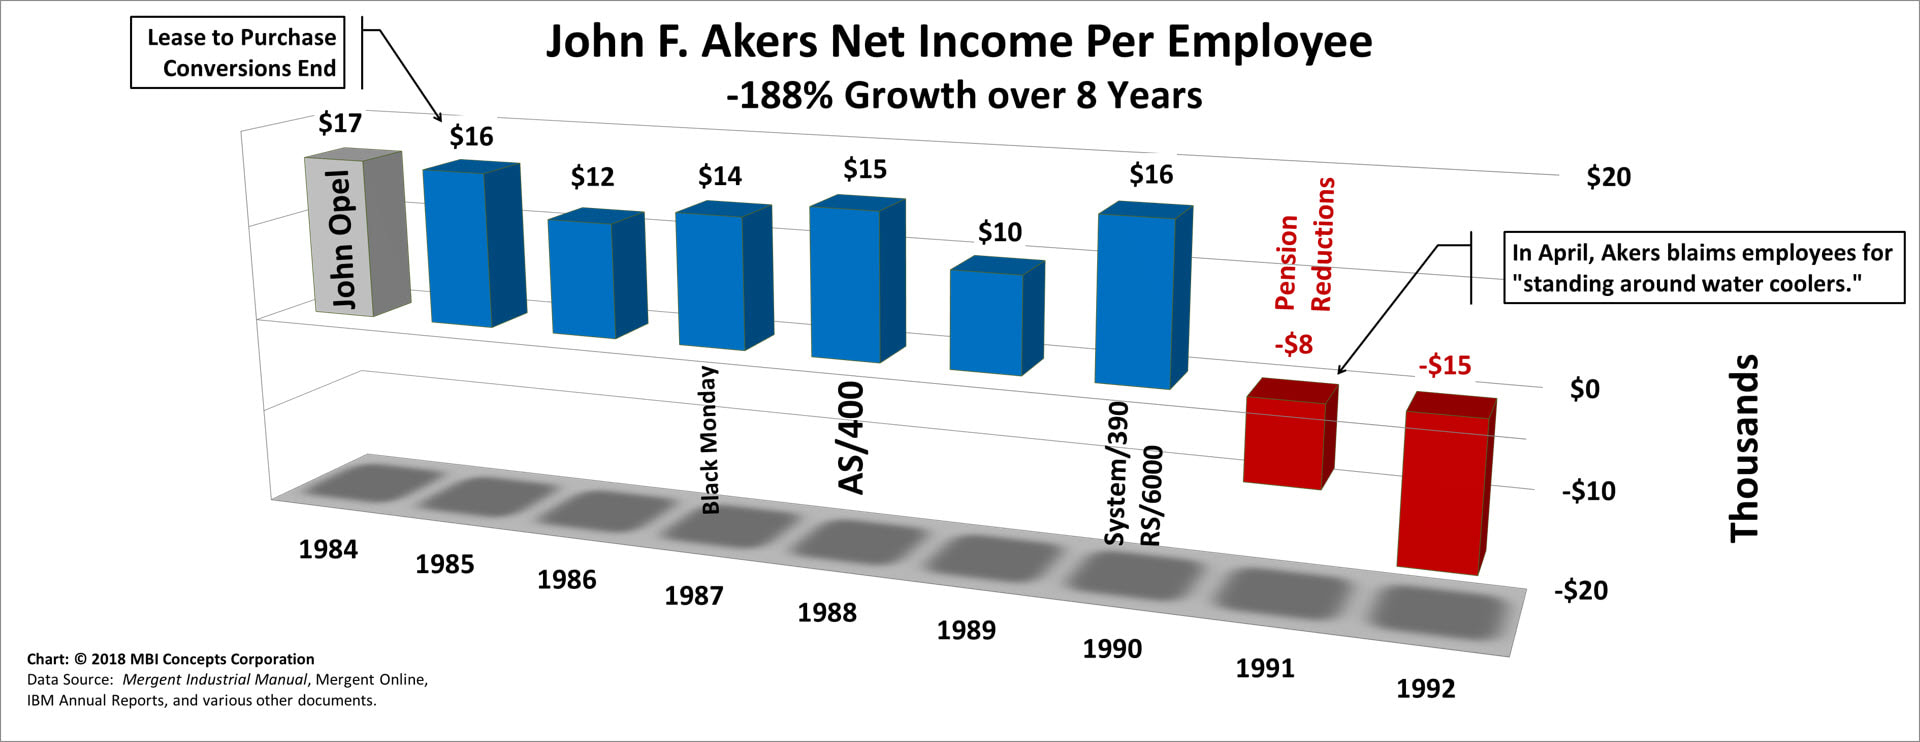 Bar Chart of John F. Aker's Yearly Net Income per Employee over his 8 years as IBM's CEO from 1985 to 1992